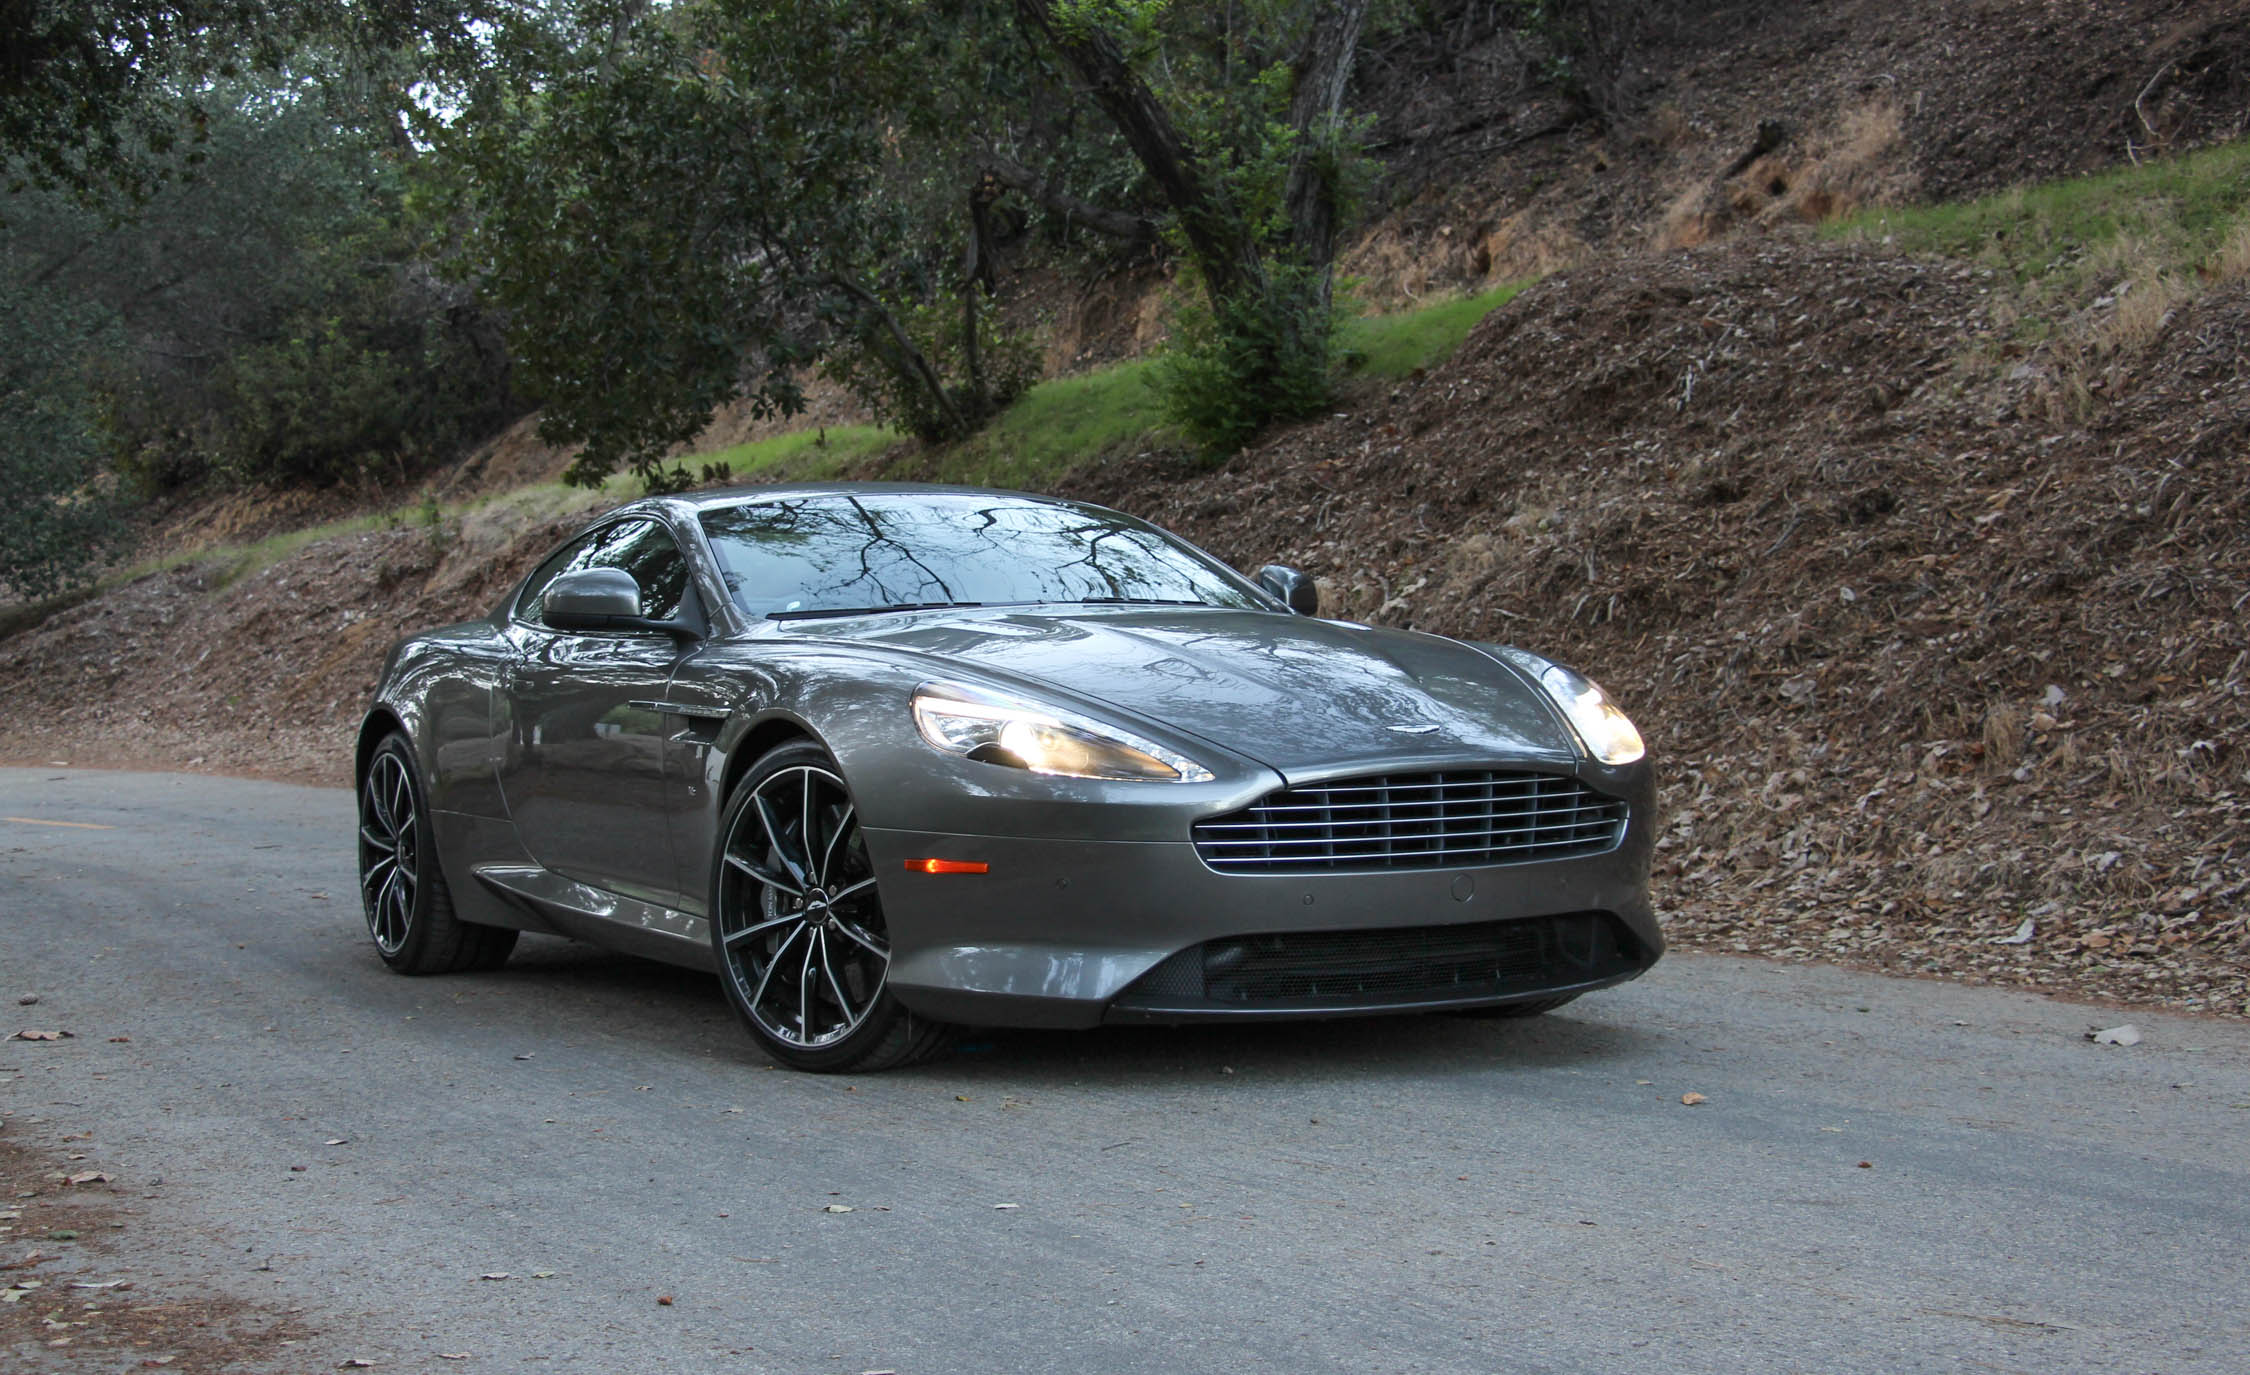 2016 Aston Martin DB9 GT (View 12 of 18)